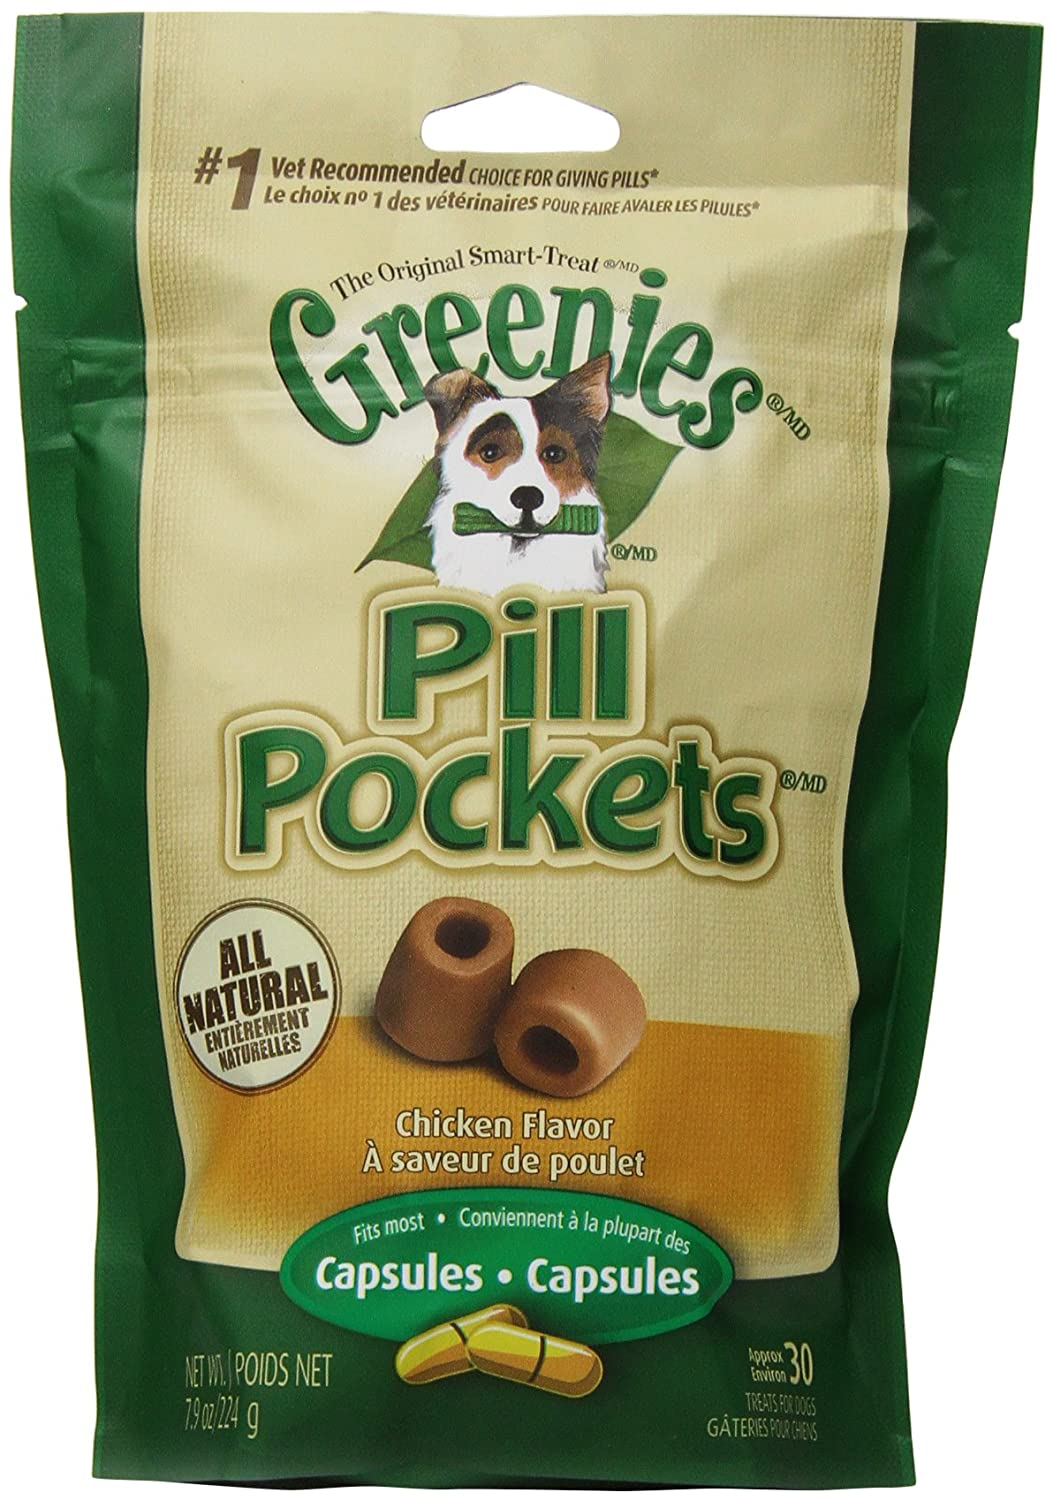 GREENIES 6-Pack Pill Pockets for Dogs, Chicken Flavor – 7.9-Ounce